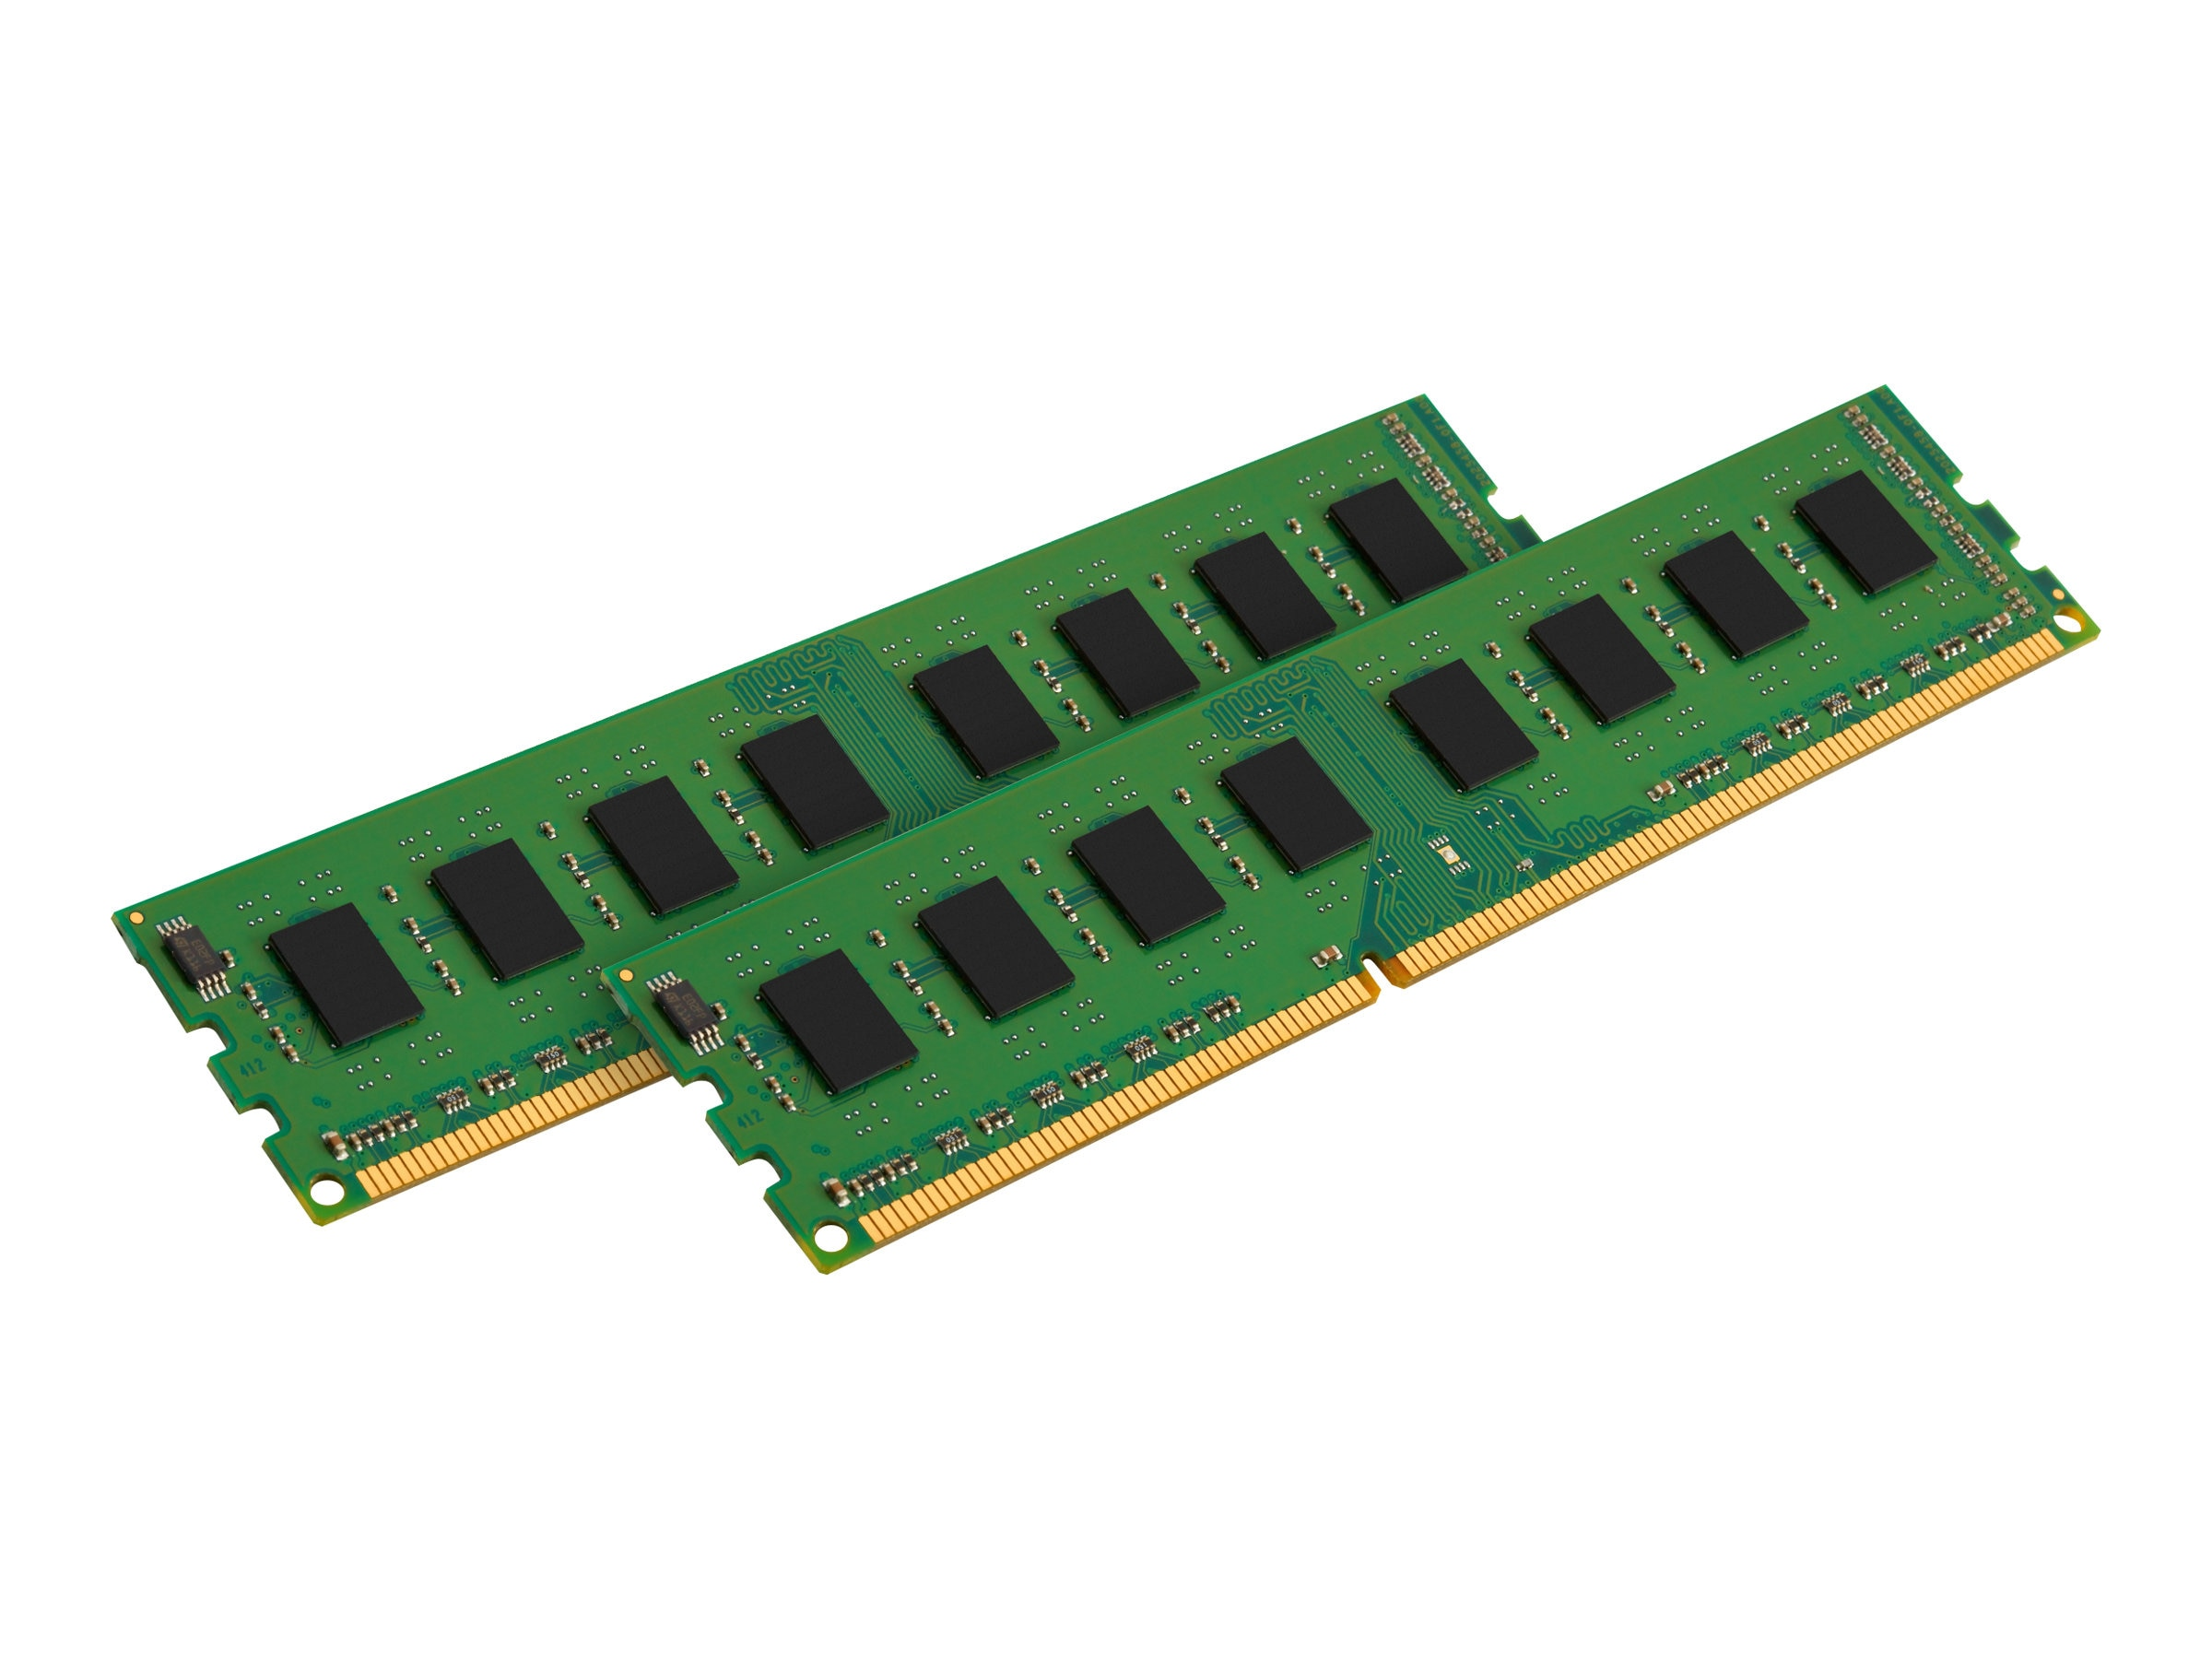 Kingston 8GB PC3-10600 240-pin DDR3 SDRAM DIMM Kit